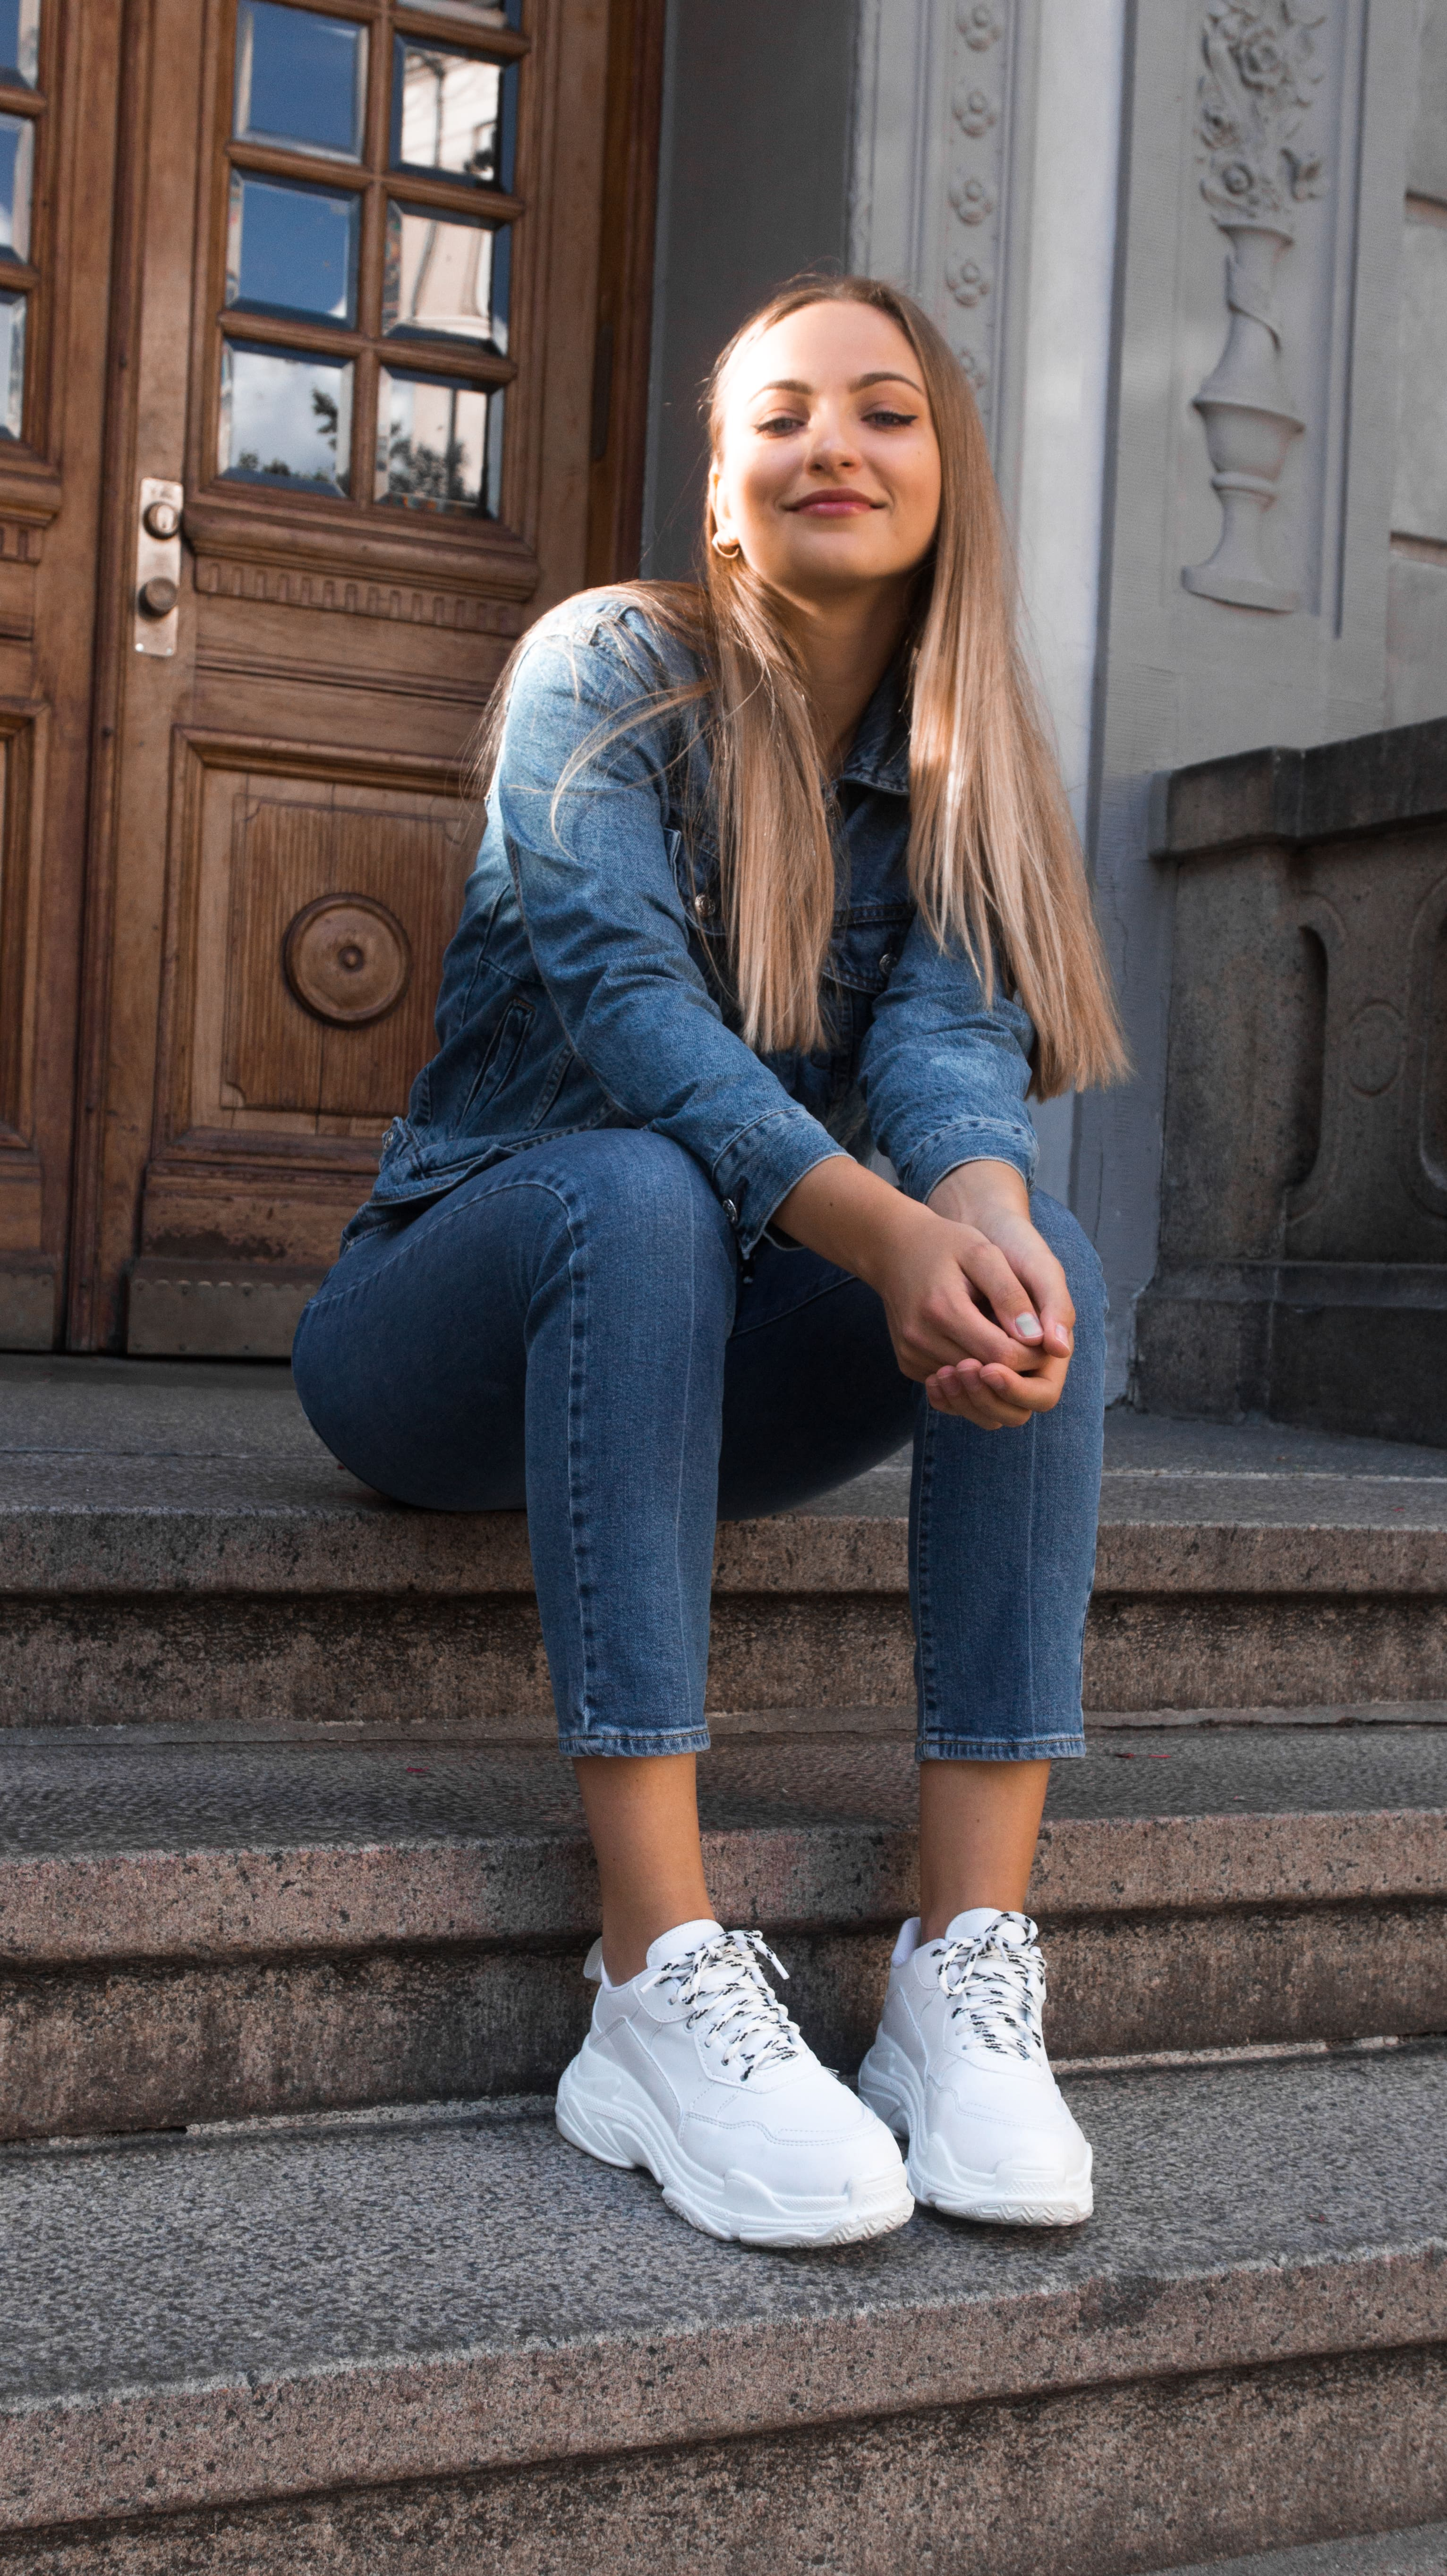 Chunky Sneakers Nelly Review Big Sneakers Scandinavian Style